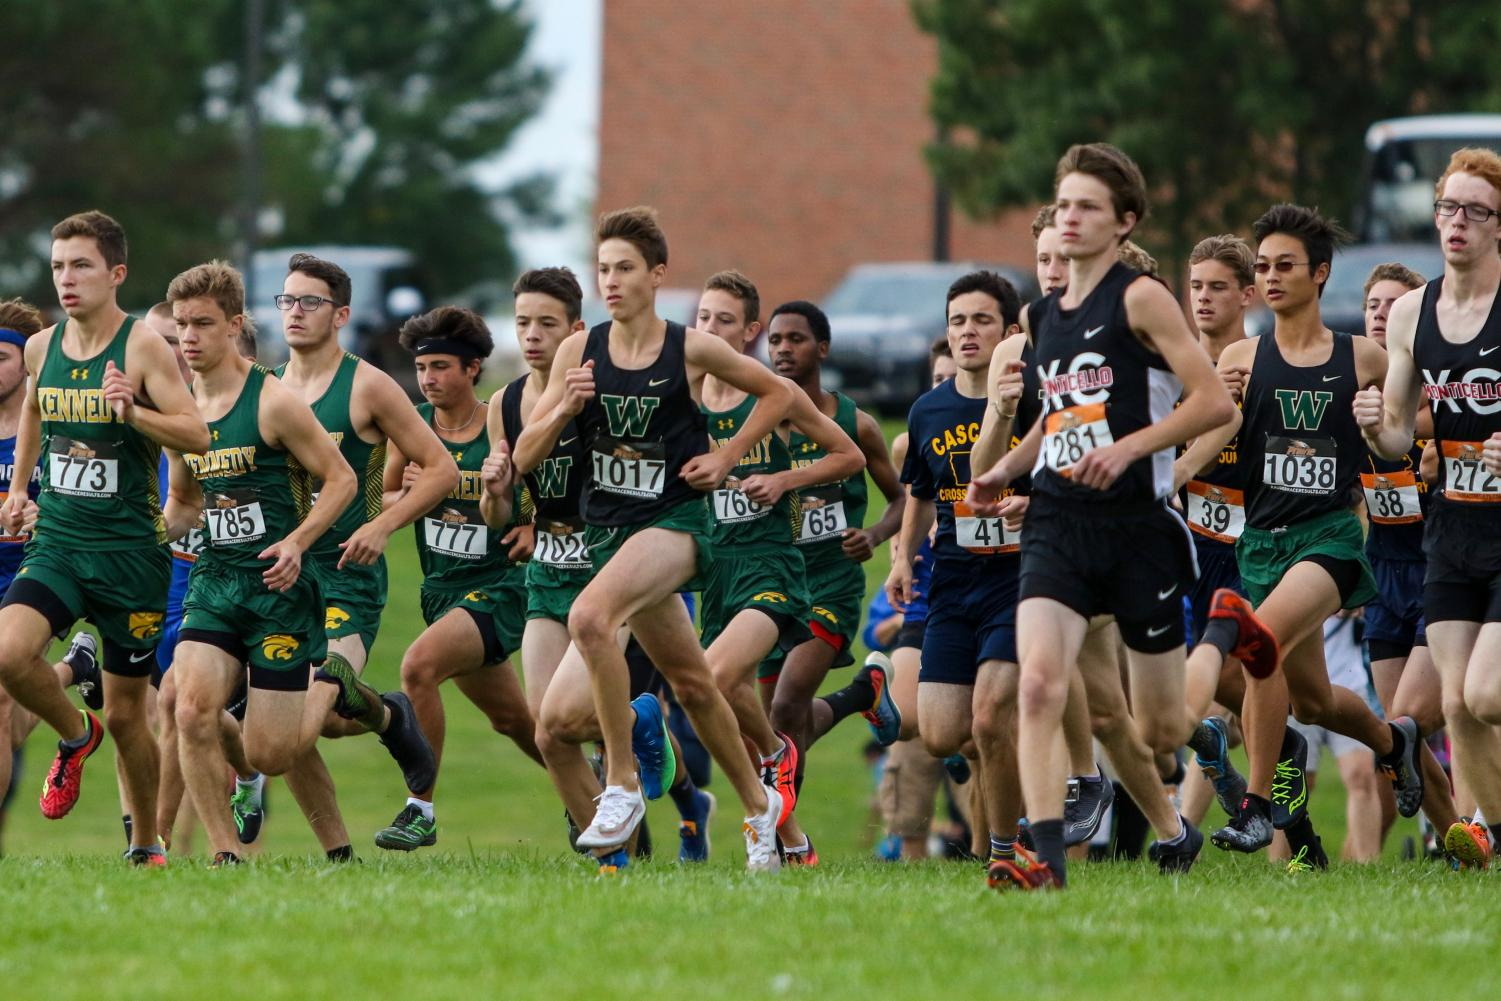 Alex+McKane+%2722+and+the+Trojans+sprint+out+of+the+starting+line+during+the+Prairie+Invitational+at+Prairie+High+School+on+Aug.+31.